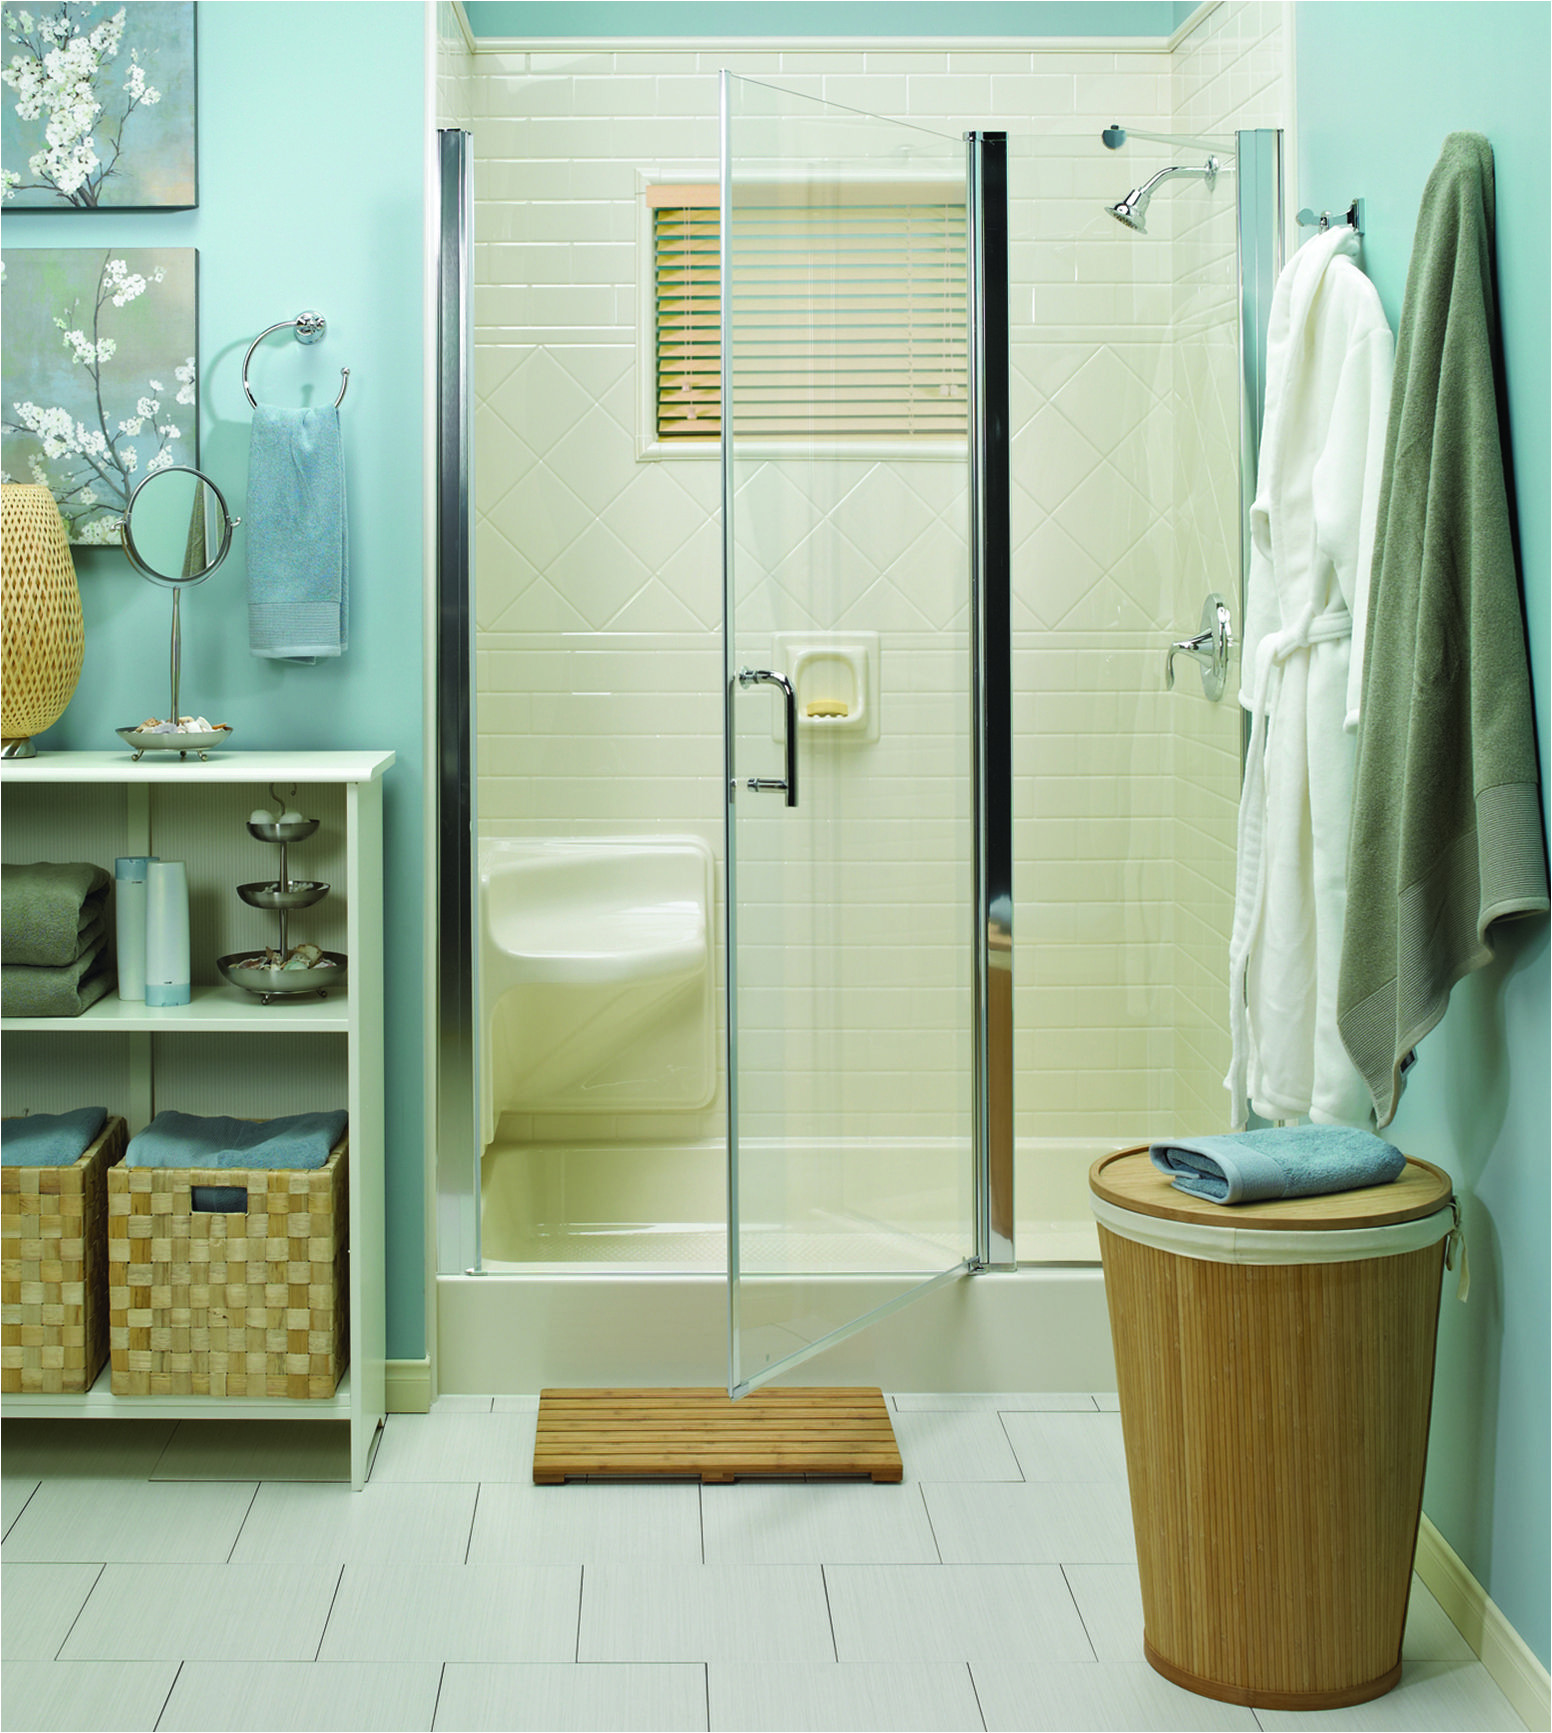 a bath fitter shower glass door can give your bathroom such a clean look